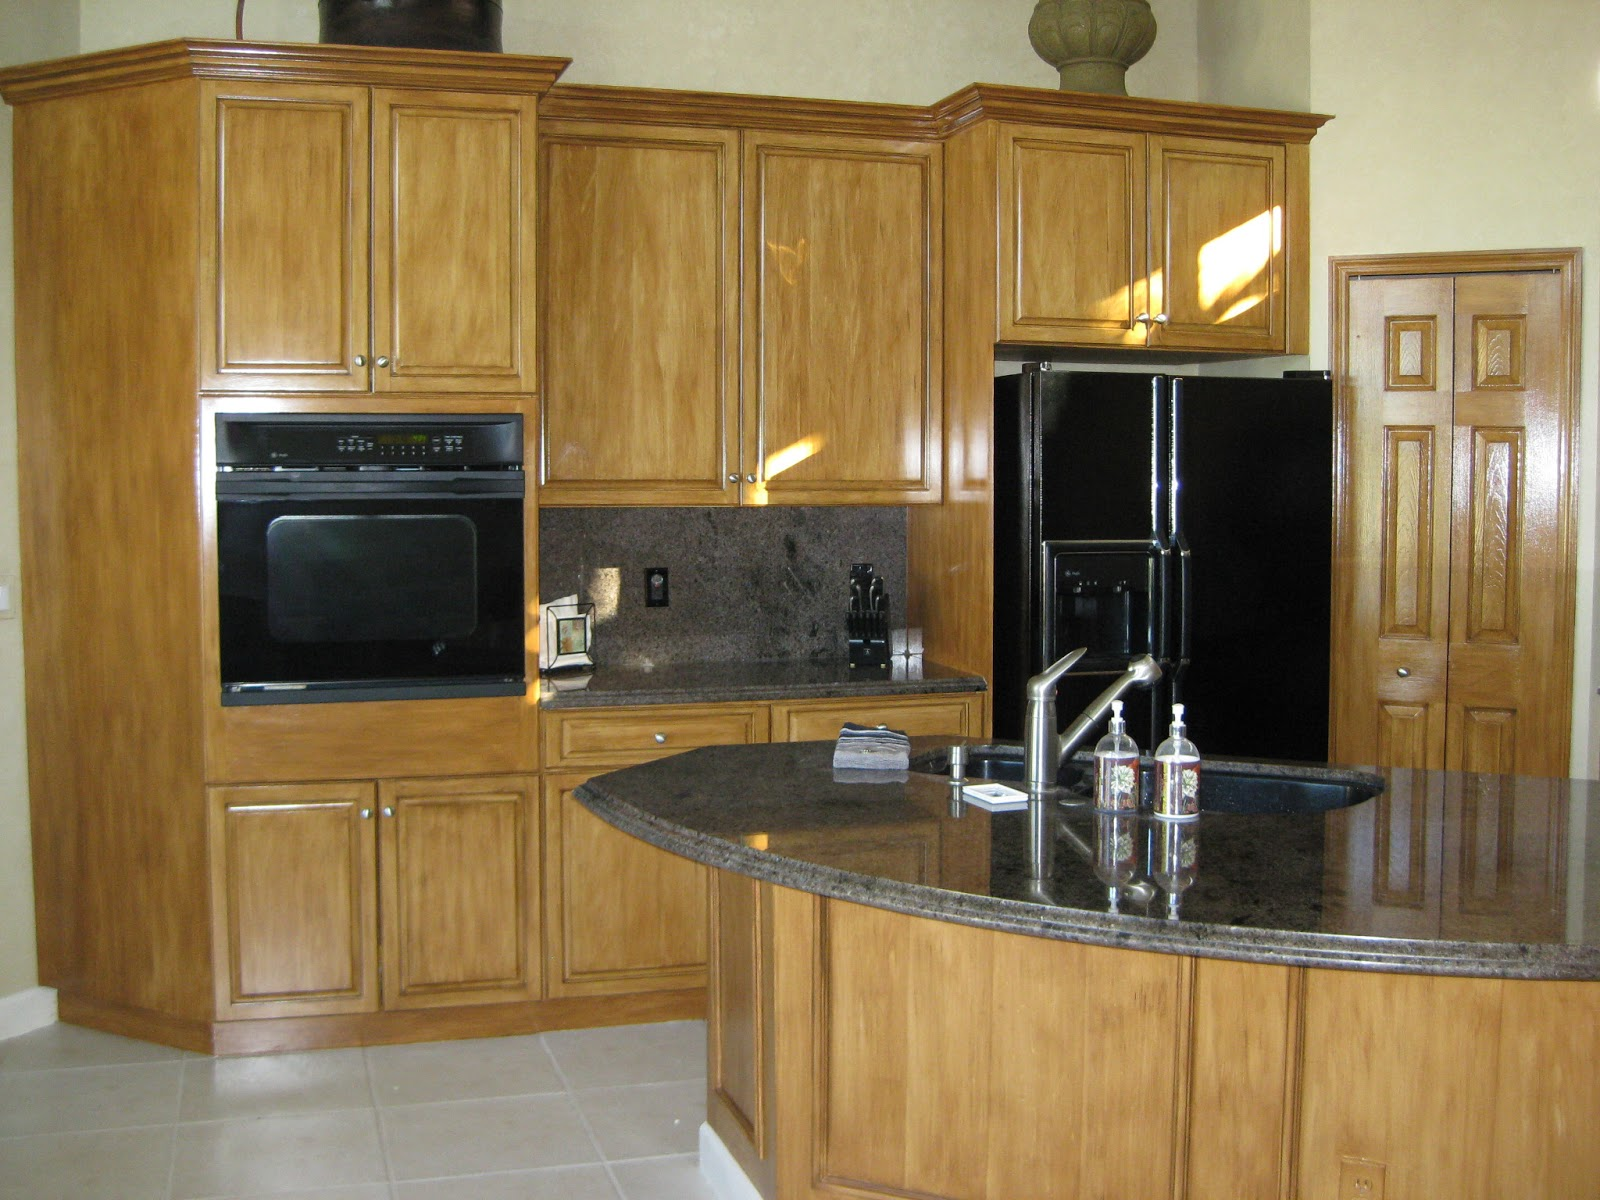 Array Of Color Inc: Faux Wood Finish Kitchen Cabinets